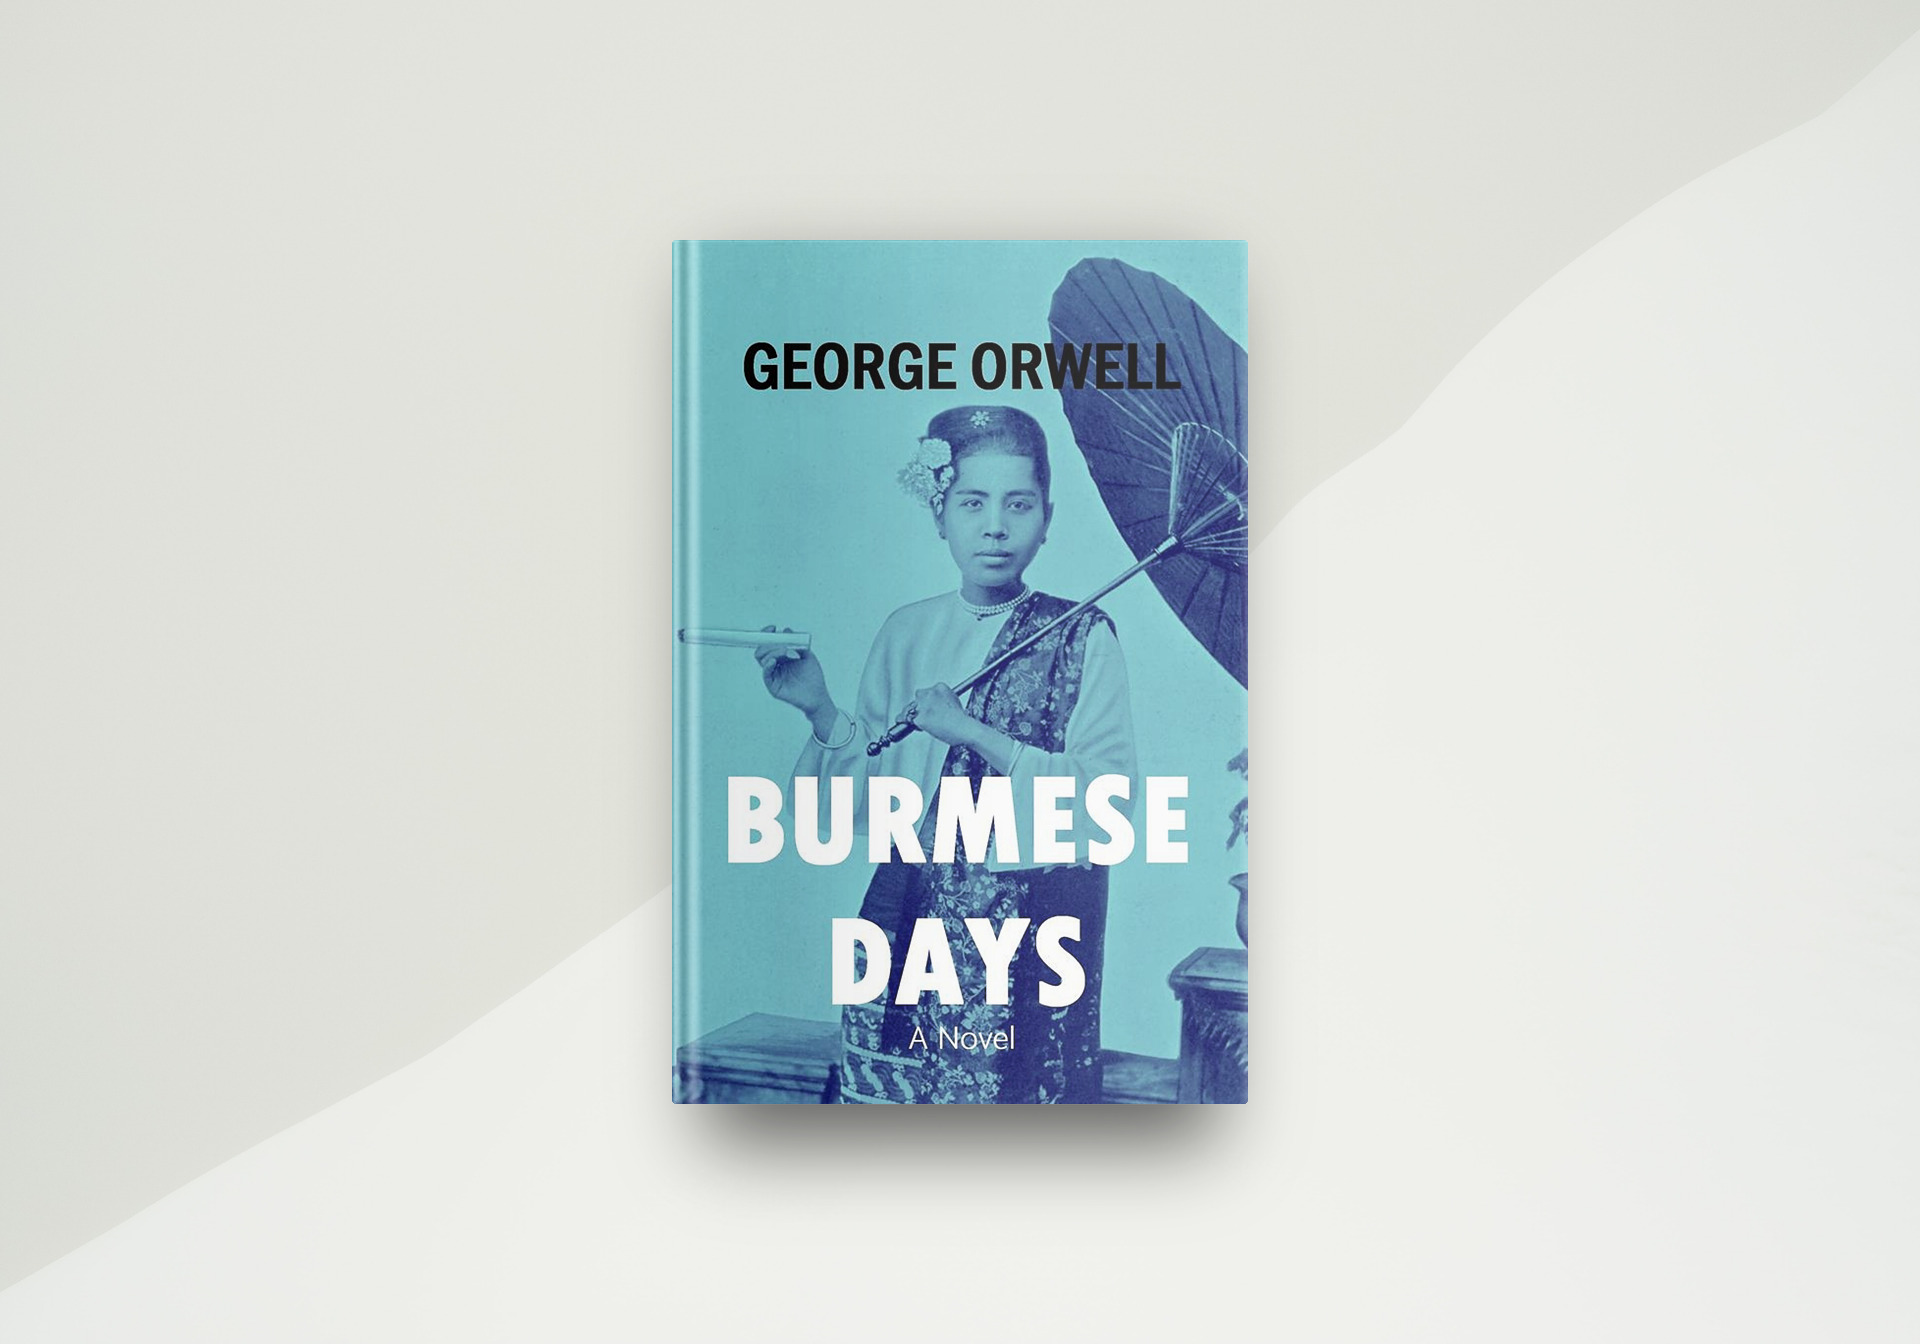 Burmese Days By George Orwell - Book Cover